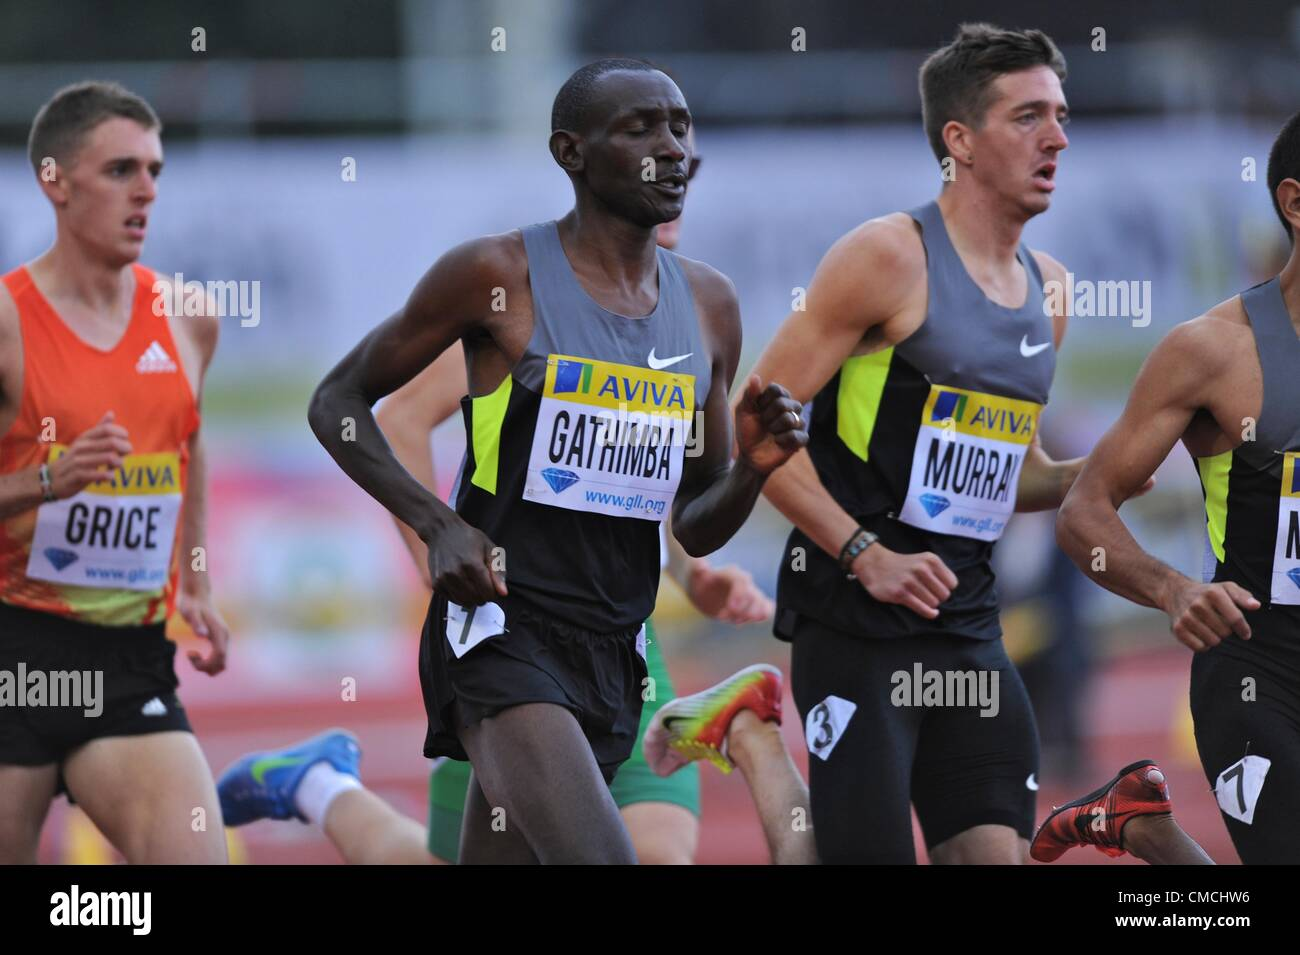 14.07.2012 London ENGLAND Mens one mile,Gideon Gathimba, KEN in action during the Aviva Grand Prix at the Crystal - Stock Image